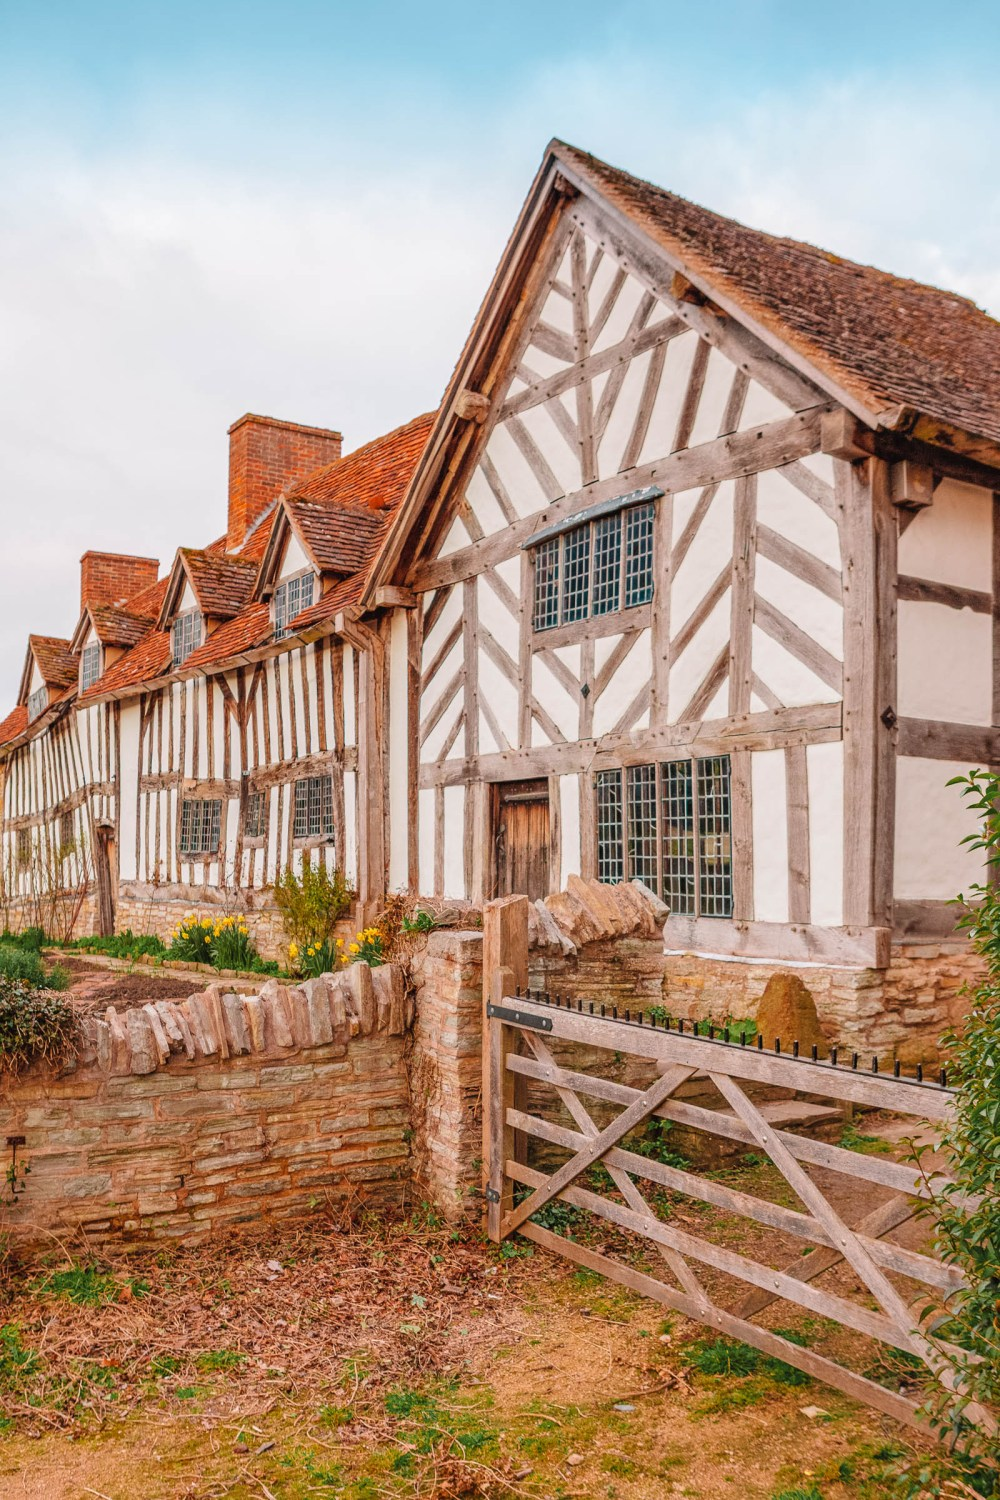 Best Things To Do In Stratford-upon-Avon (18)